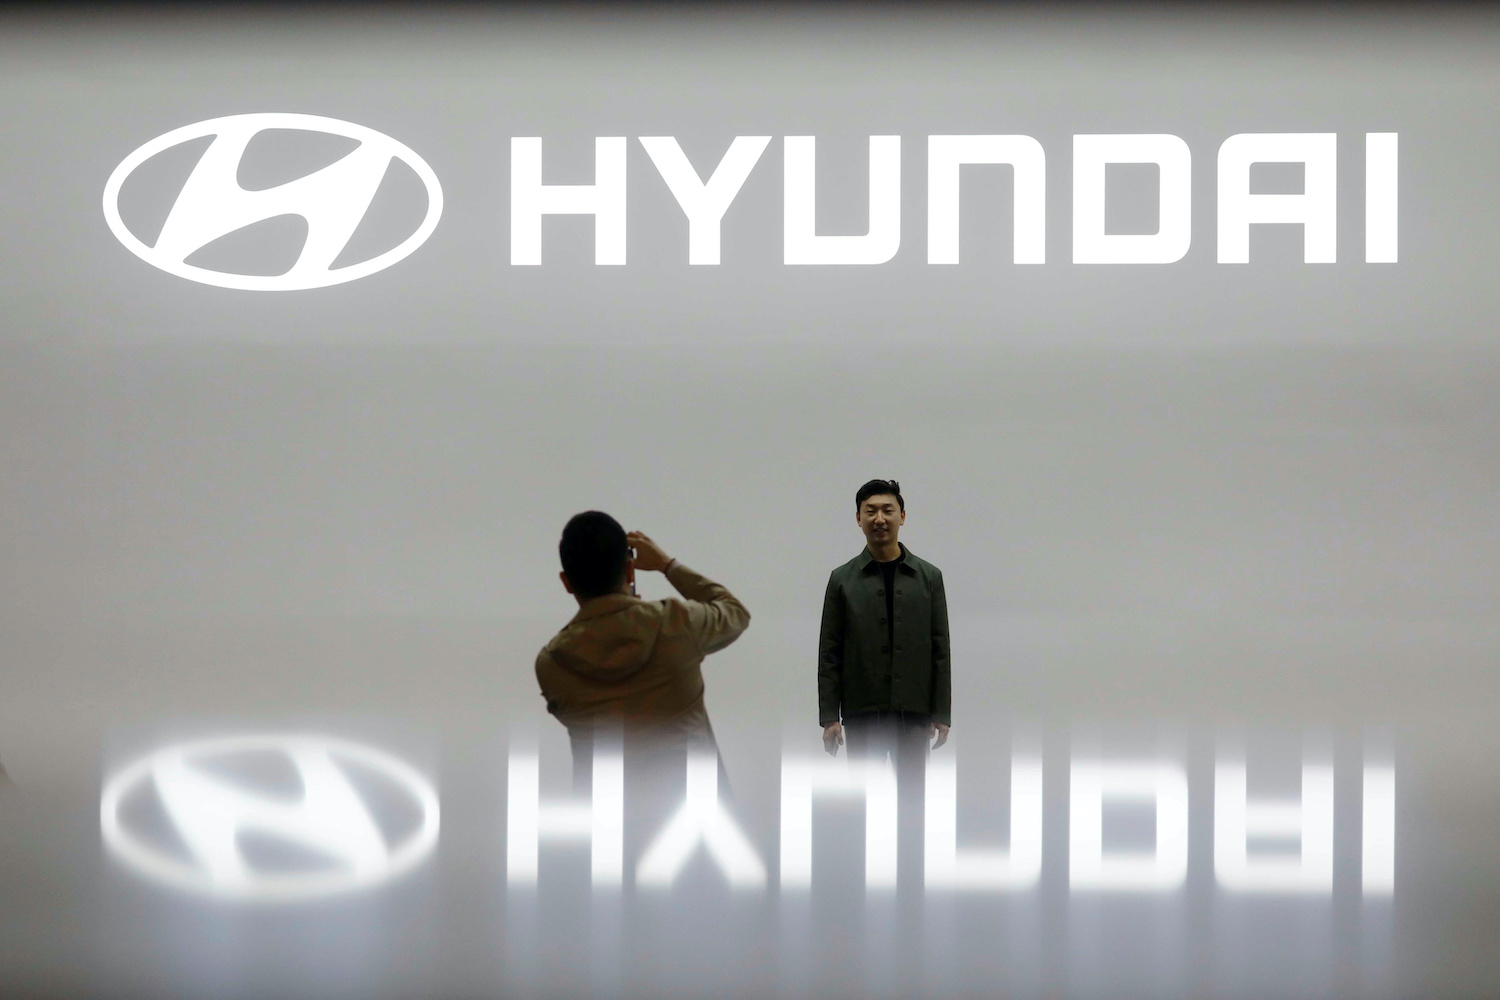 Hyundai execs face insider trading probe after Apple talks